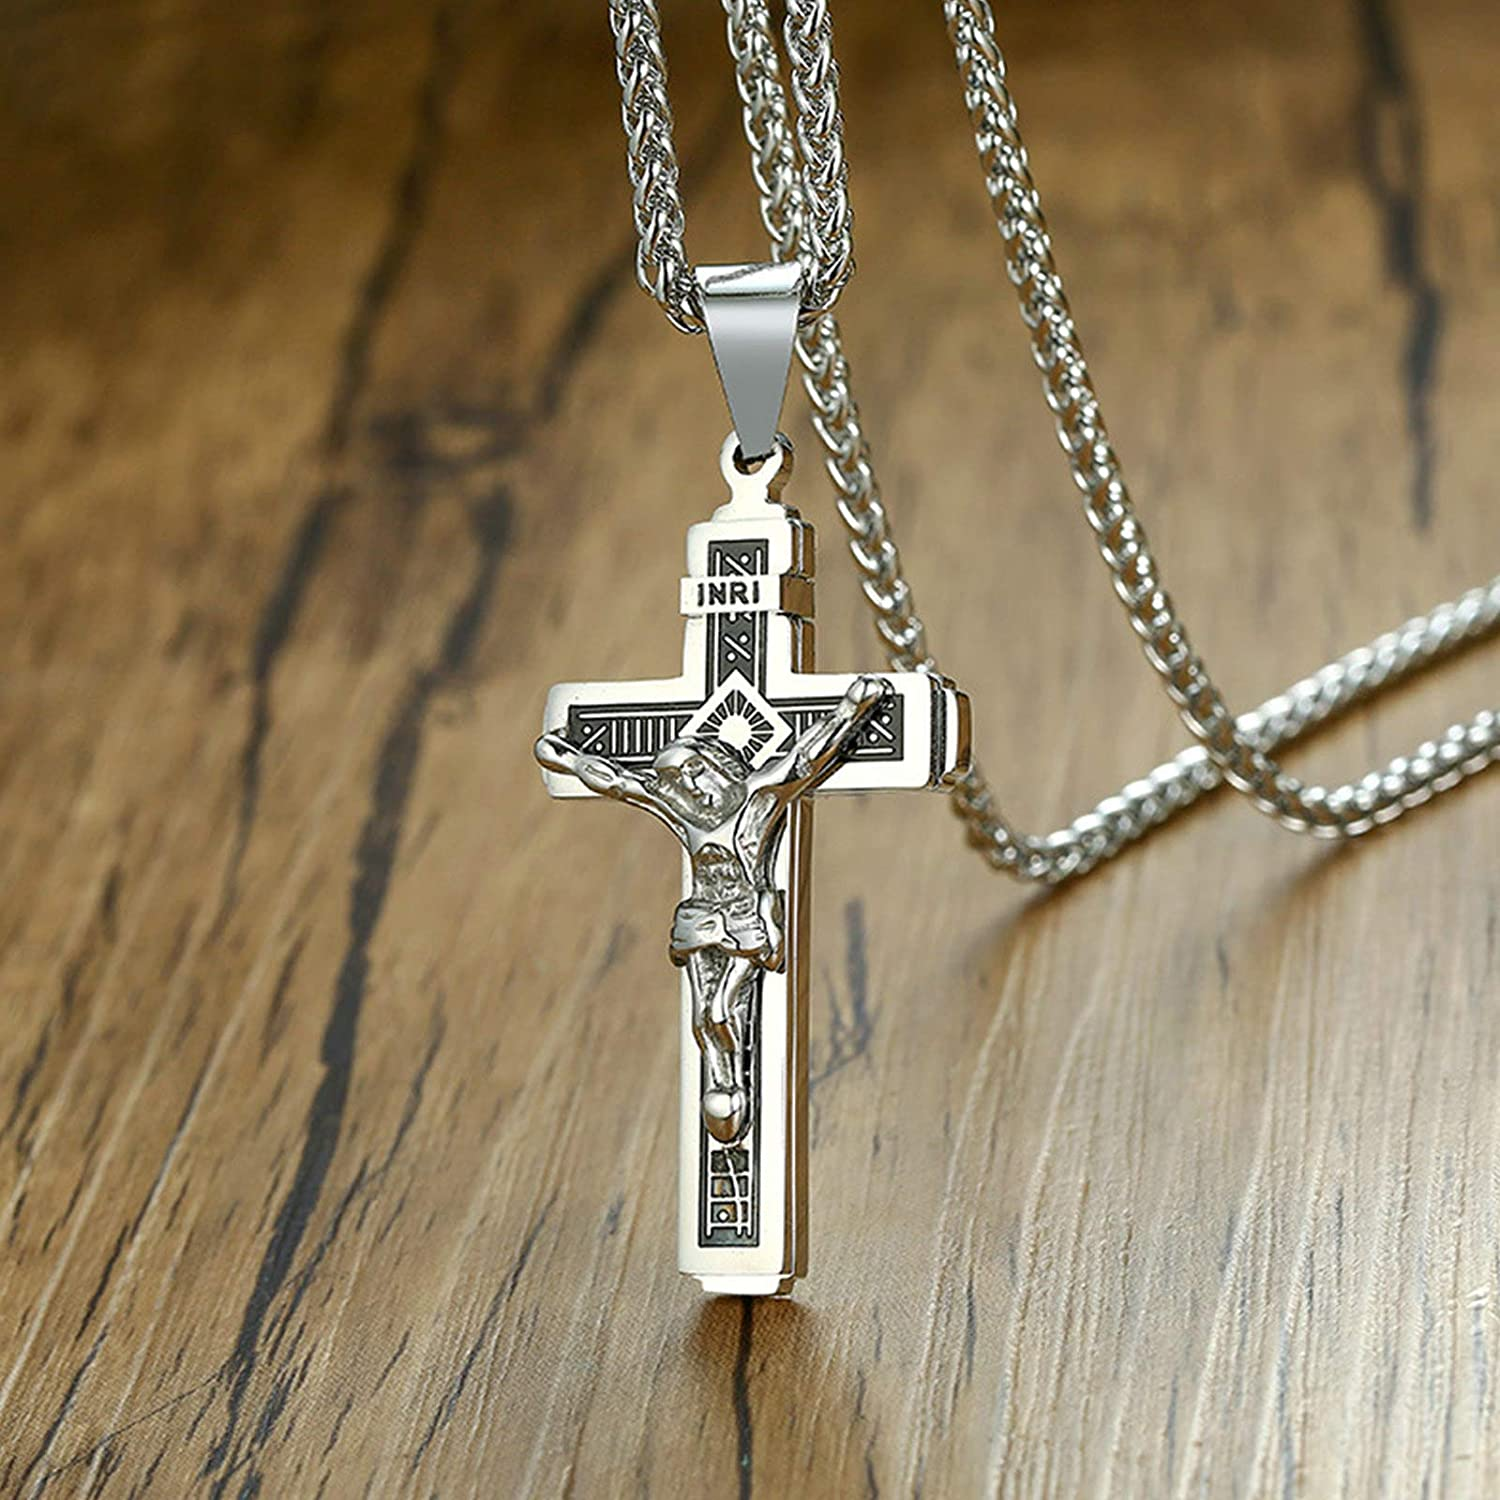 KnSam Necklace for Unisex Pendant Necklaces Stainless Steel Cross Jesus